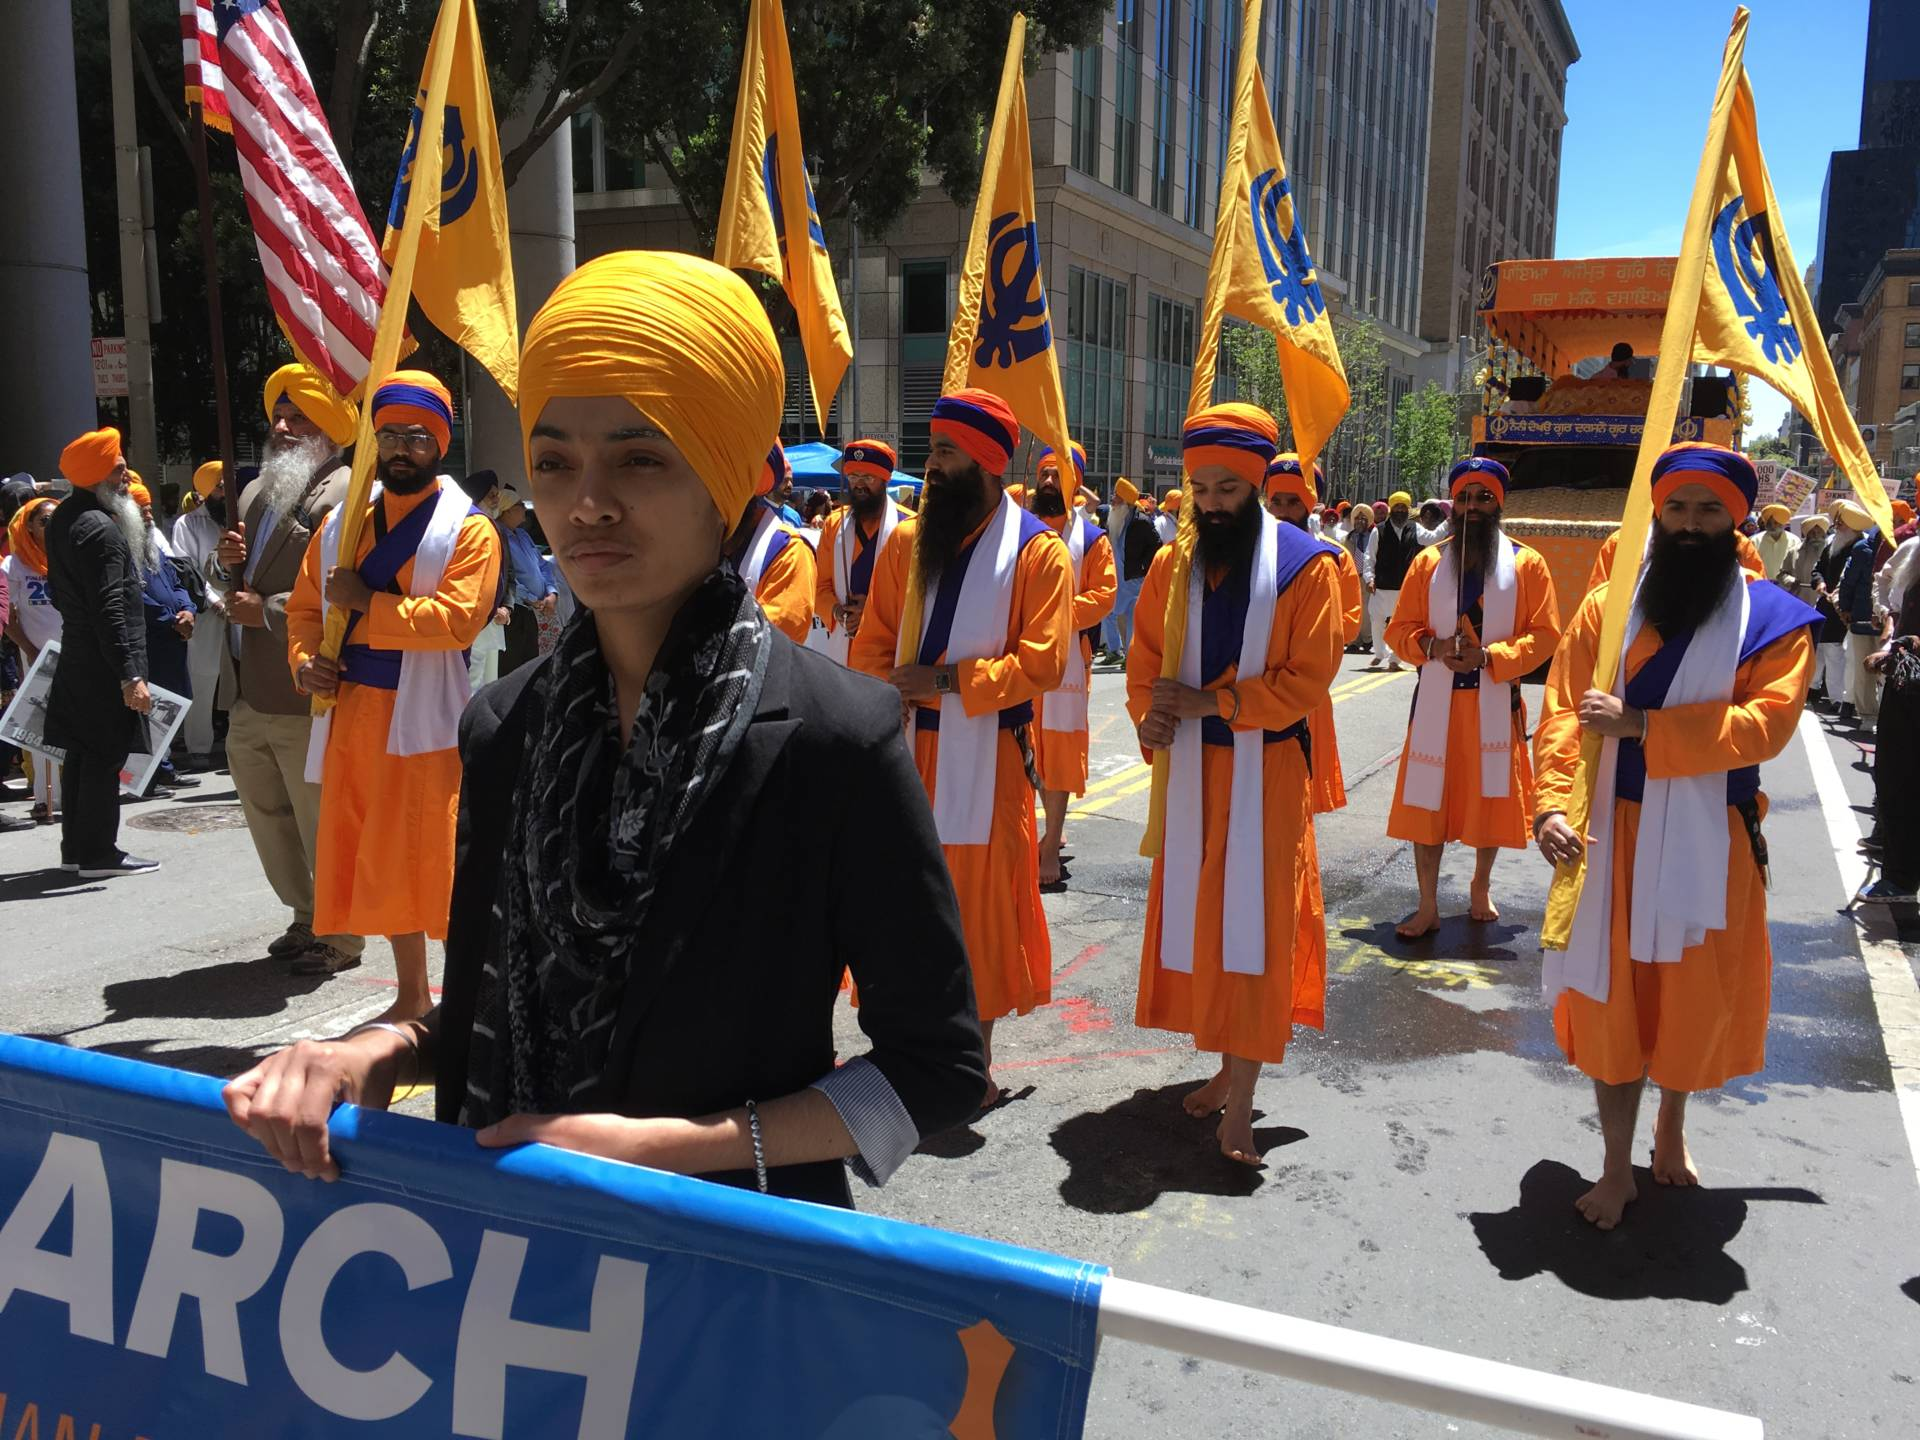 Thousands of Sikhs and their supporters paraded through San Francisco's streets on June 10, 2018, for the 5th Annual Remembrance March and Freedom Rally. Shia Levitt/KQED